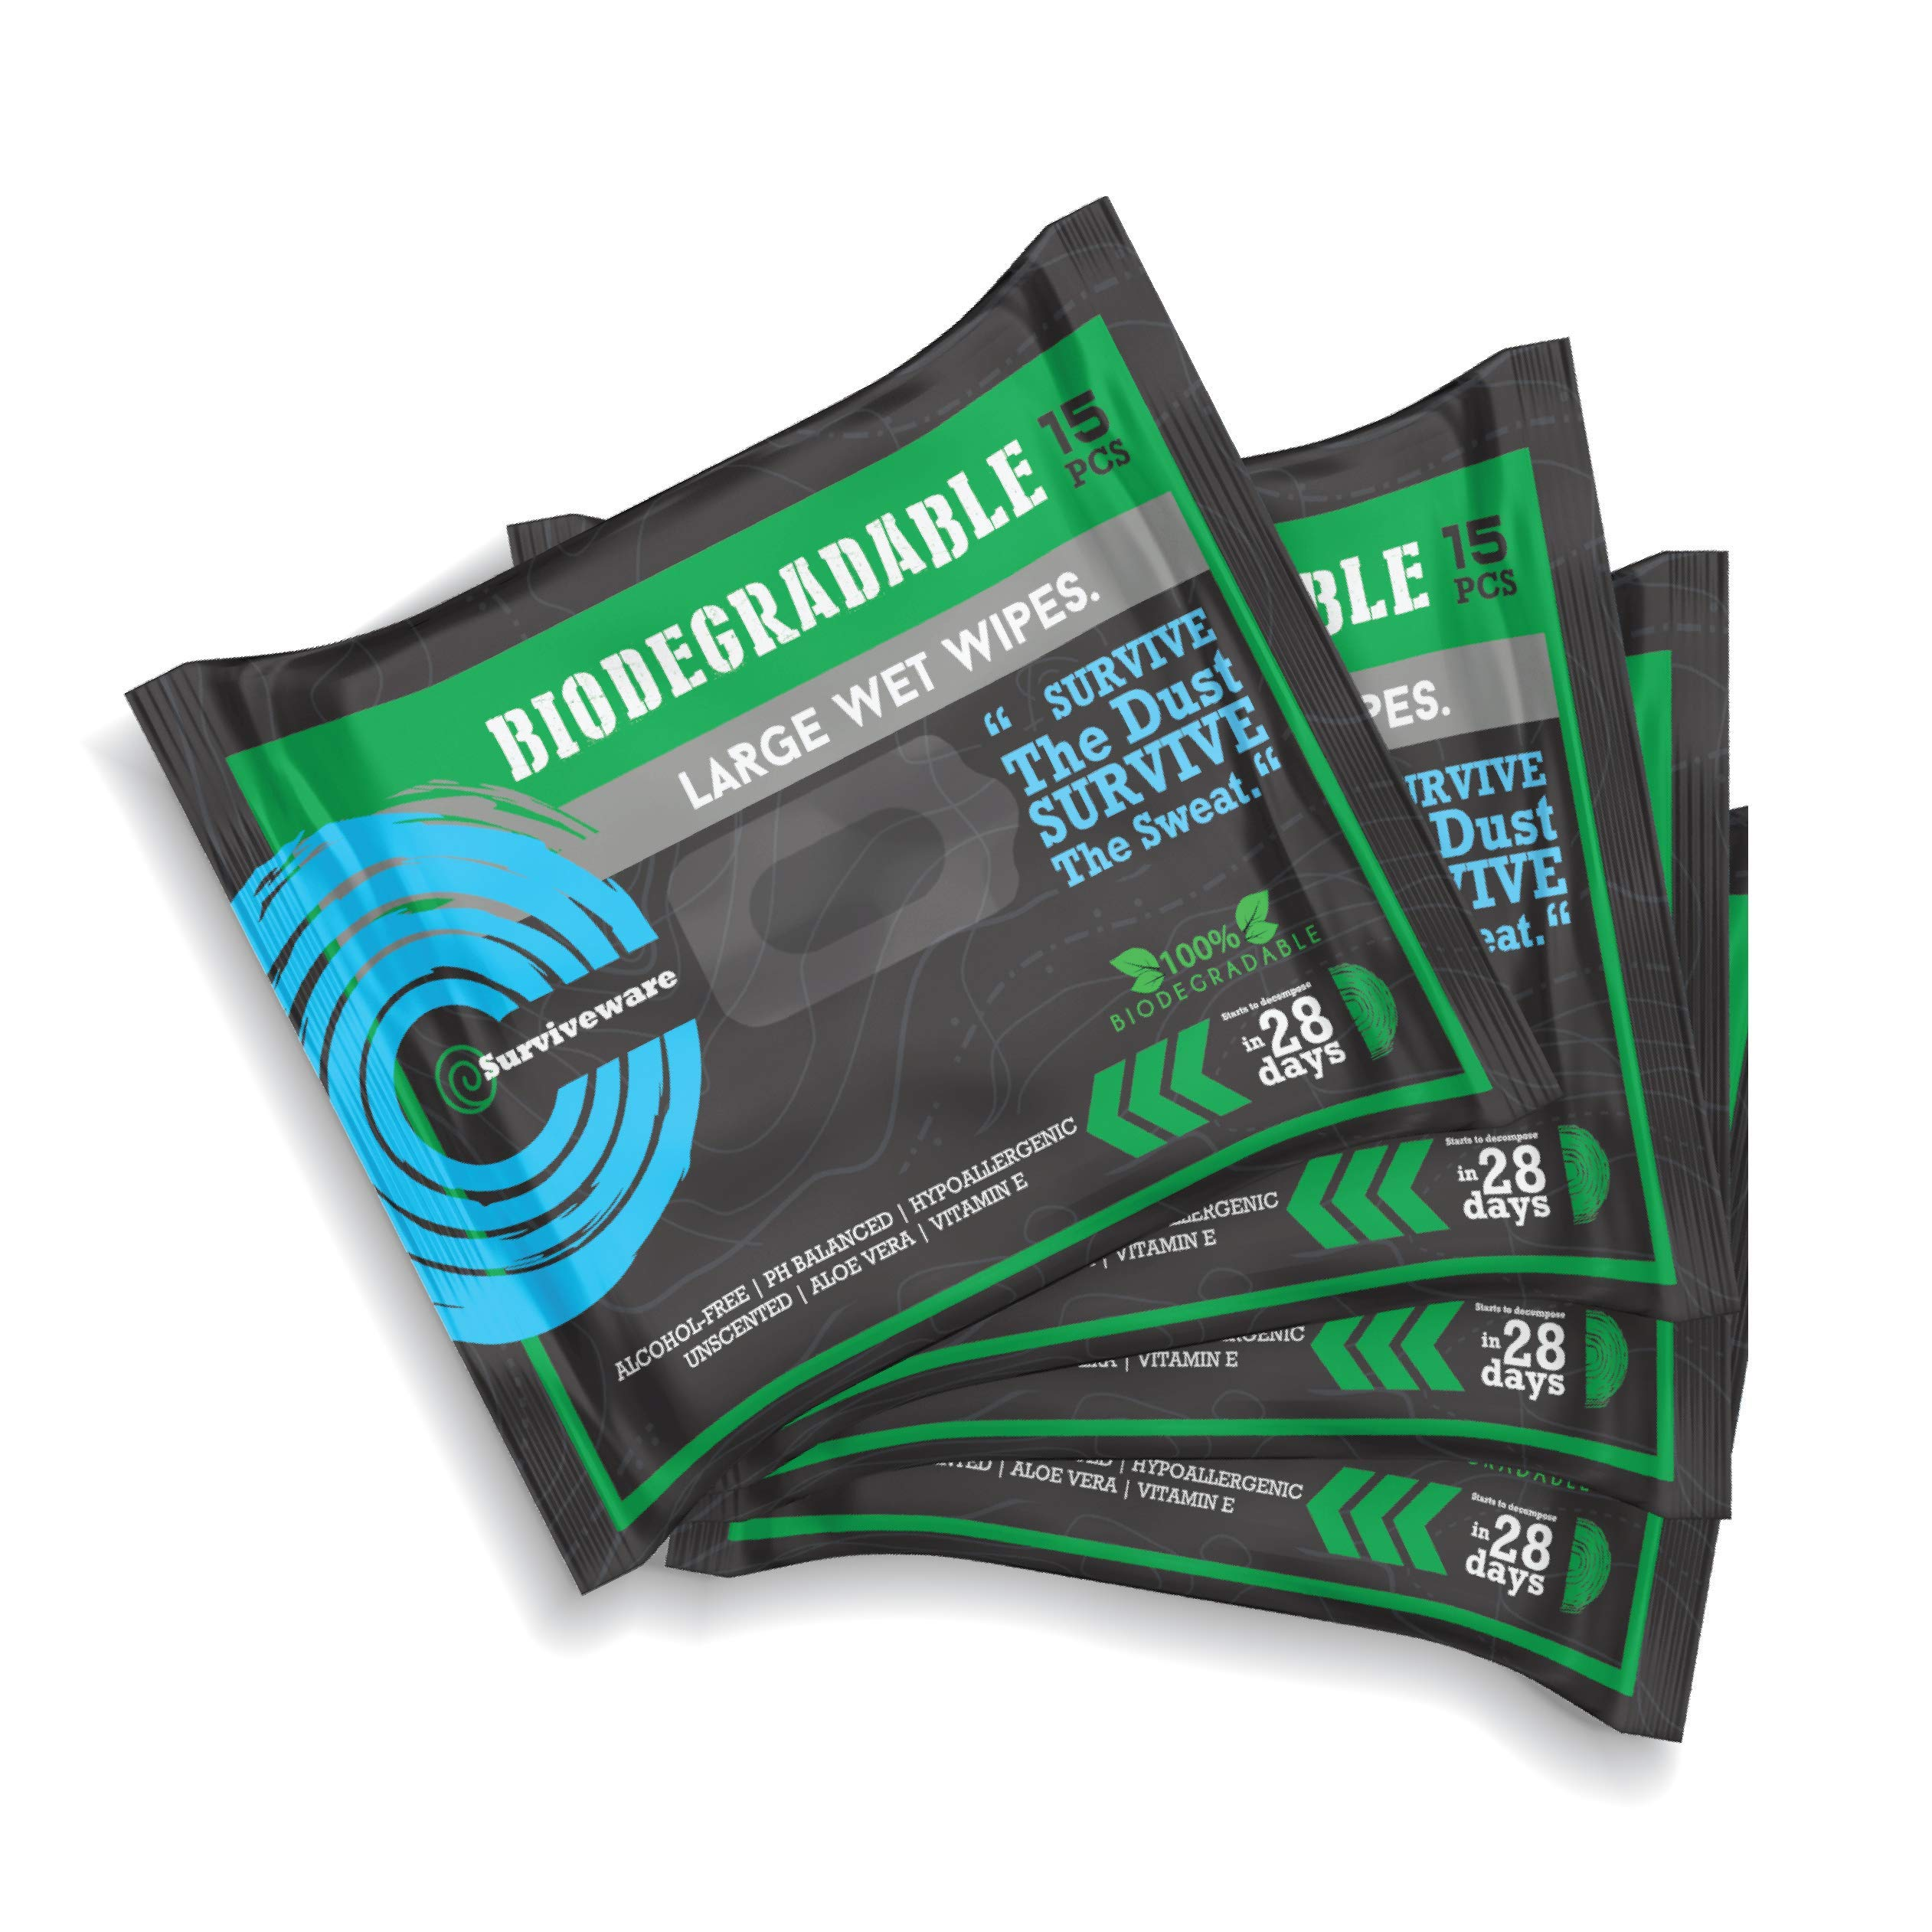 Surviveware Biodegradable Wet Wipes - 4-Pack - Made for Lightweight Traveling - Extra Large Wipes with Compact Packaging. Designed for Portability.